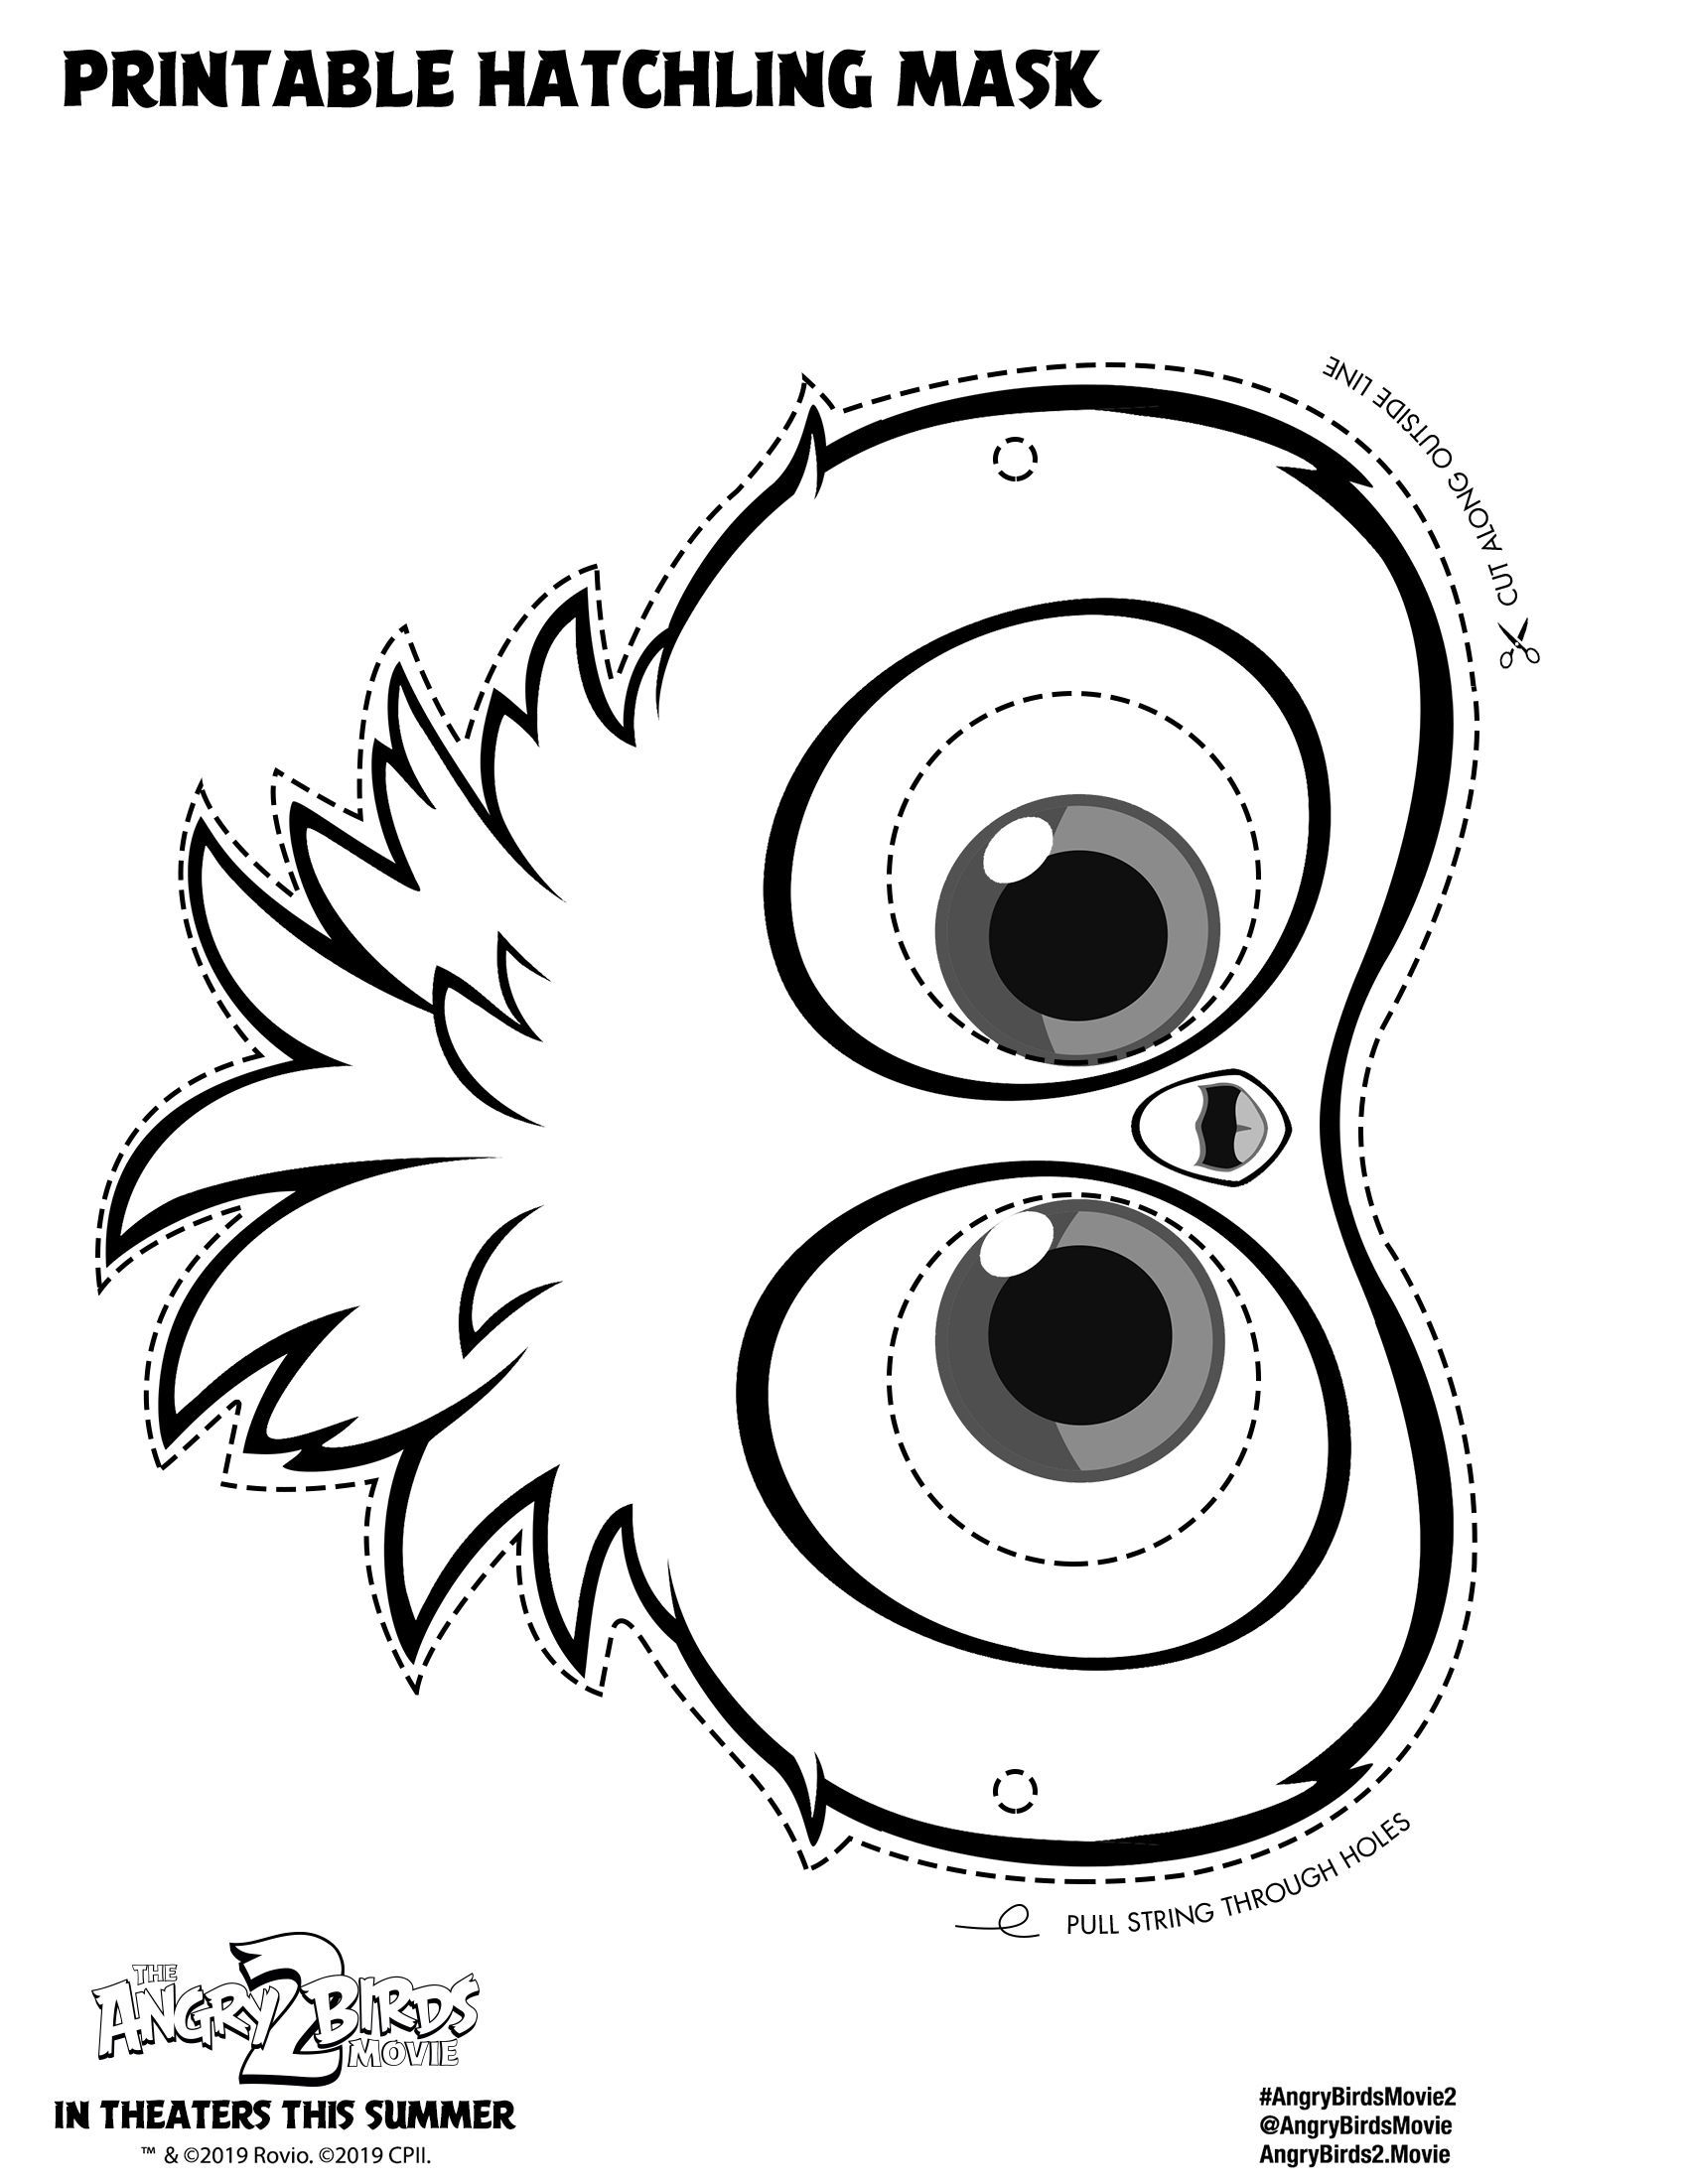 Angry Birds Movie Hatchling Mask Coloring Pages Cartoon Coloring Pages Angry Birds In 2021 Bird Coloring Pages Dinosaur Coloring Pages Star Wars Coloring Book